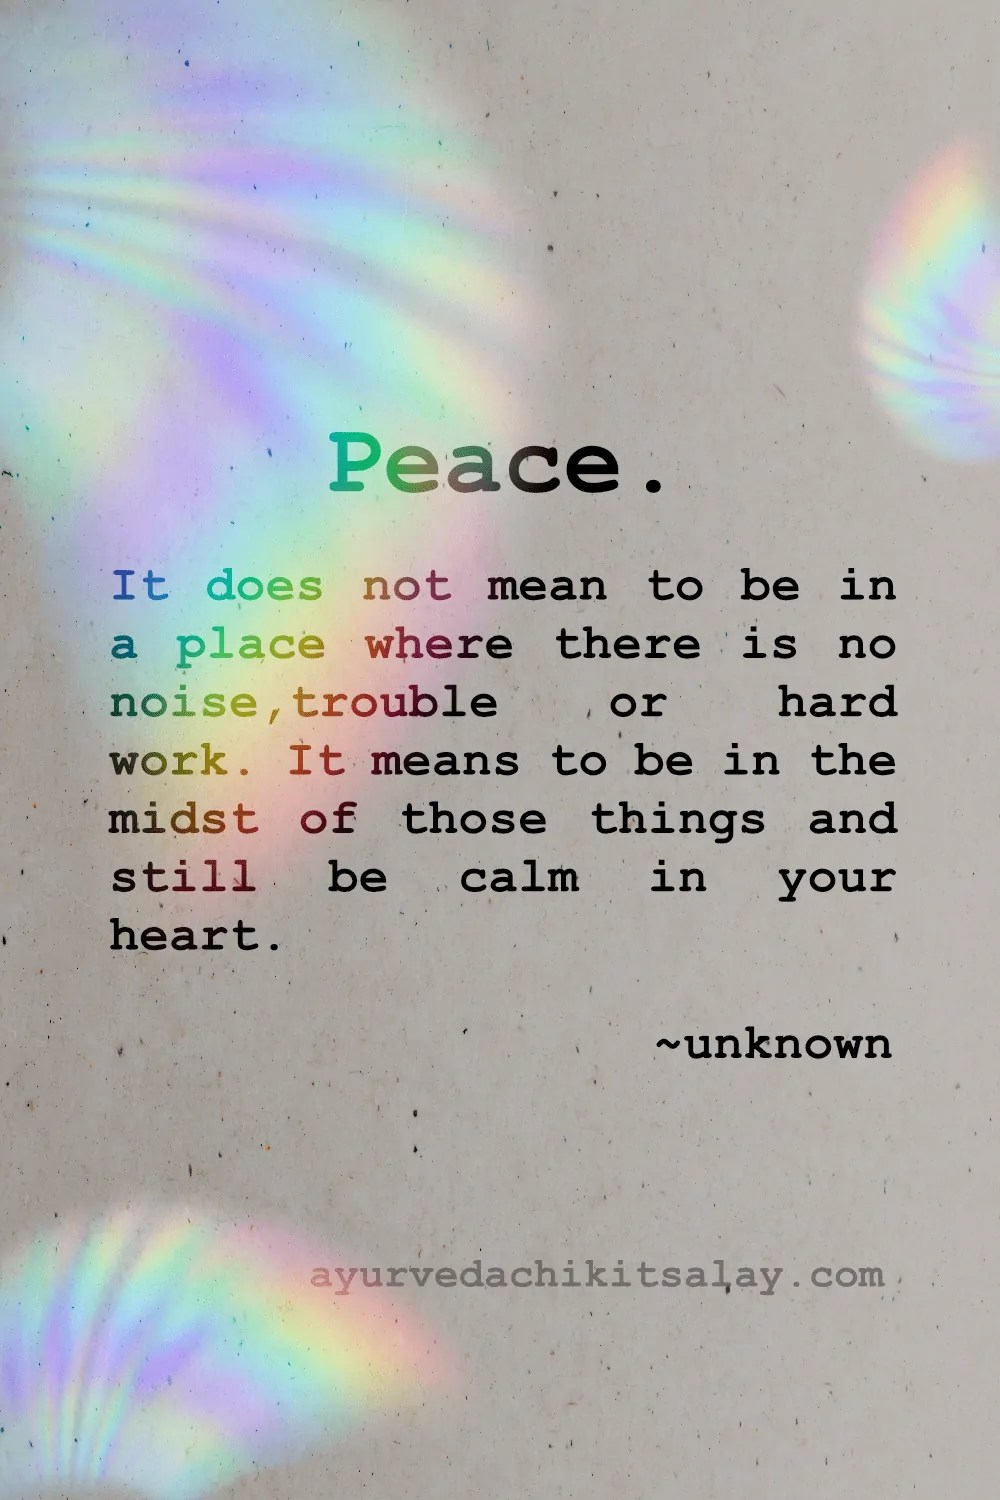 20 quotes to inspire peace outside and inside 19